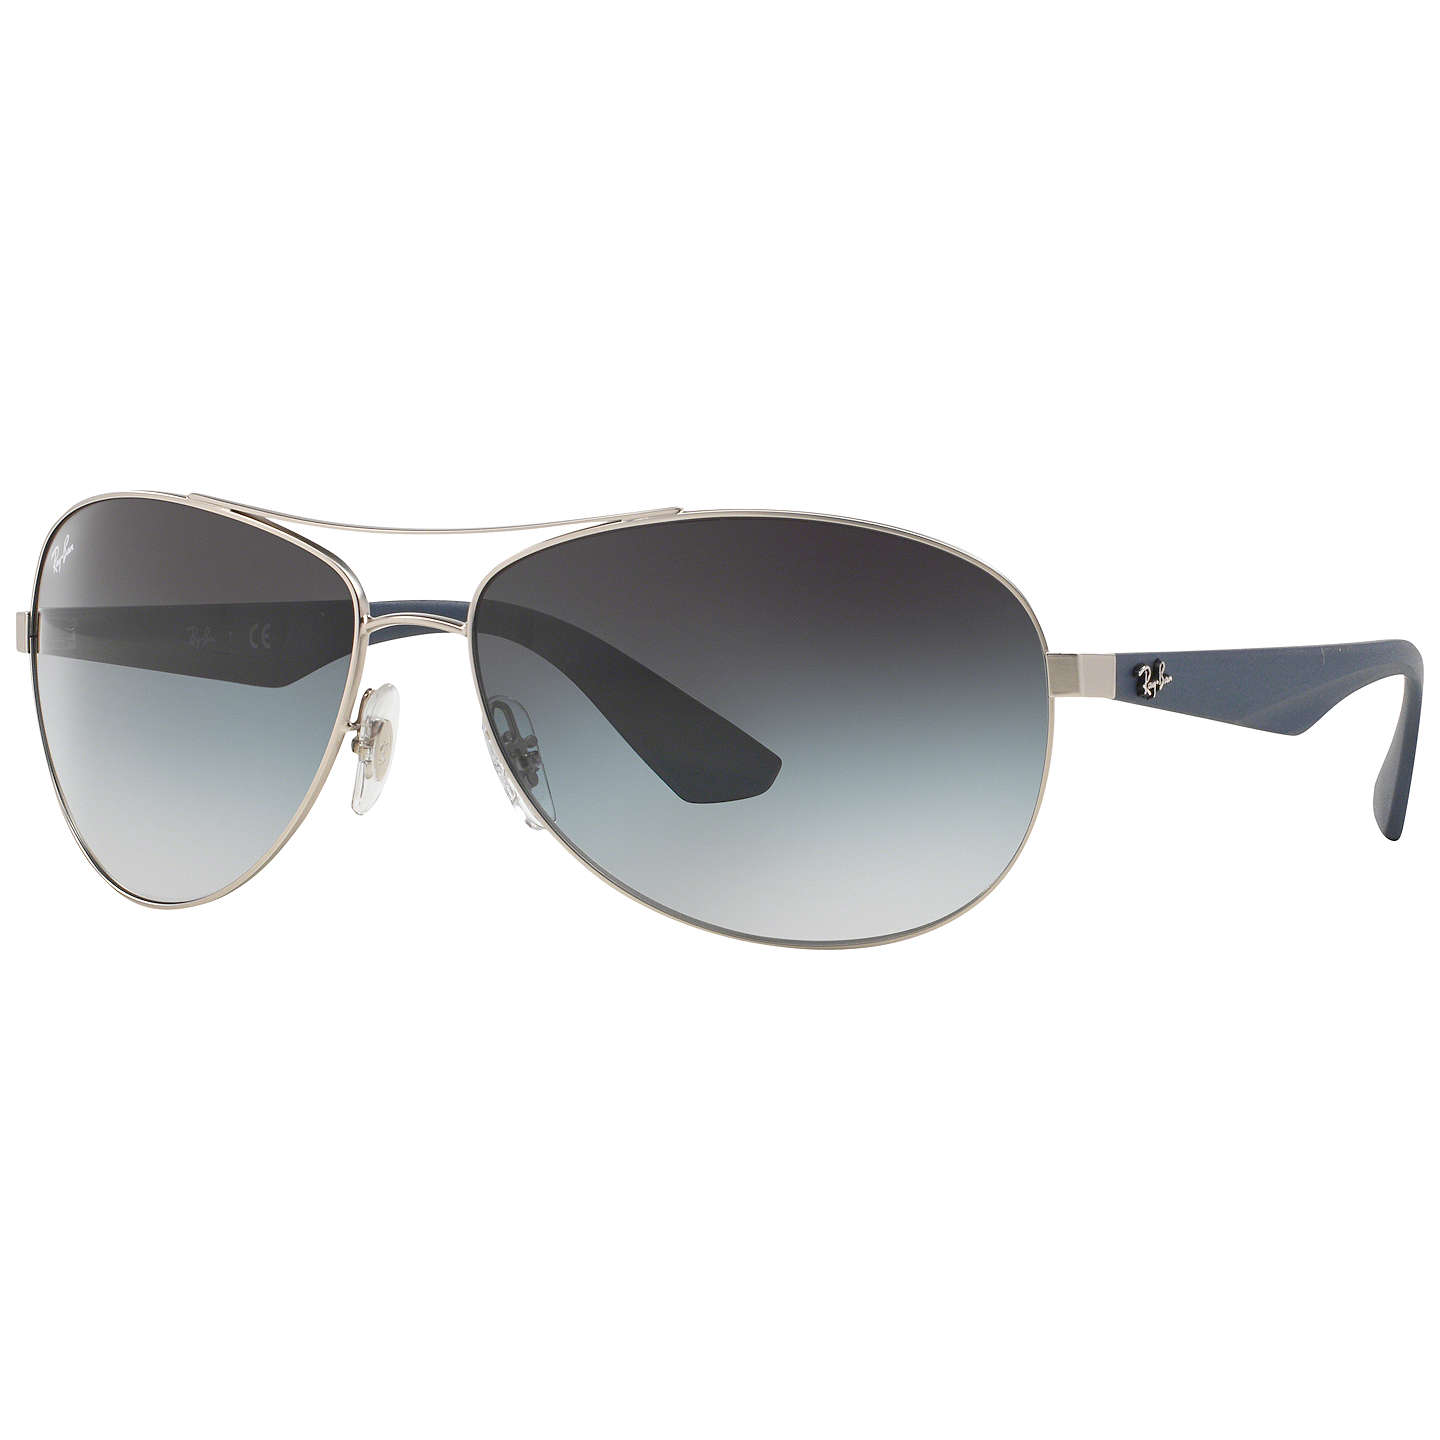 Ray Ban Rb3526 Metal Framed Pilot Sunglasses, Silver by Ray Ban